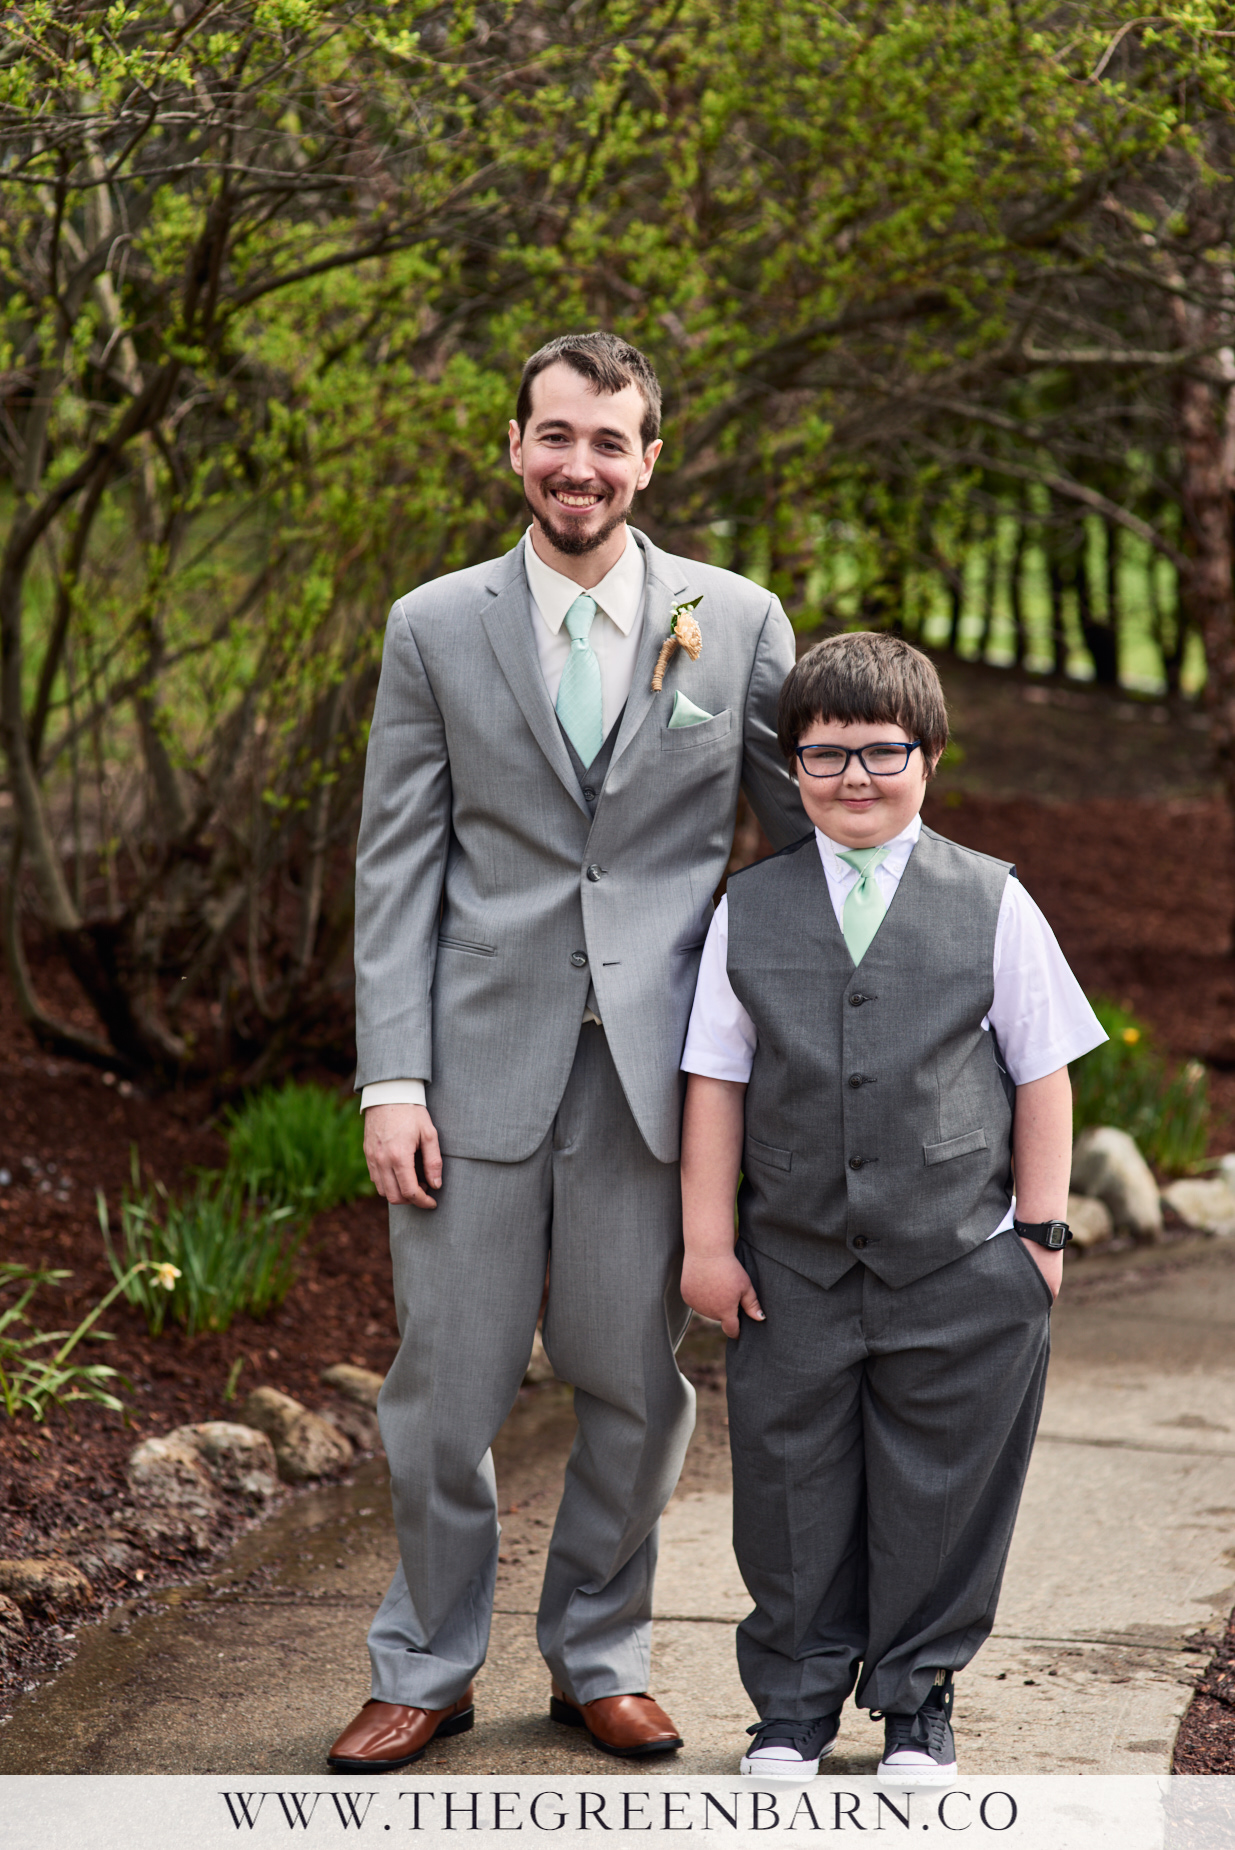 Groom and Ringbearer Photo in Grey Suits with Sea Foam Green Ties